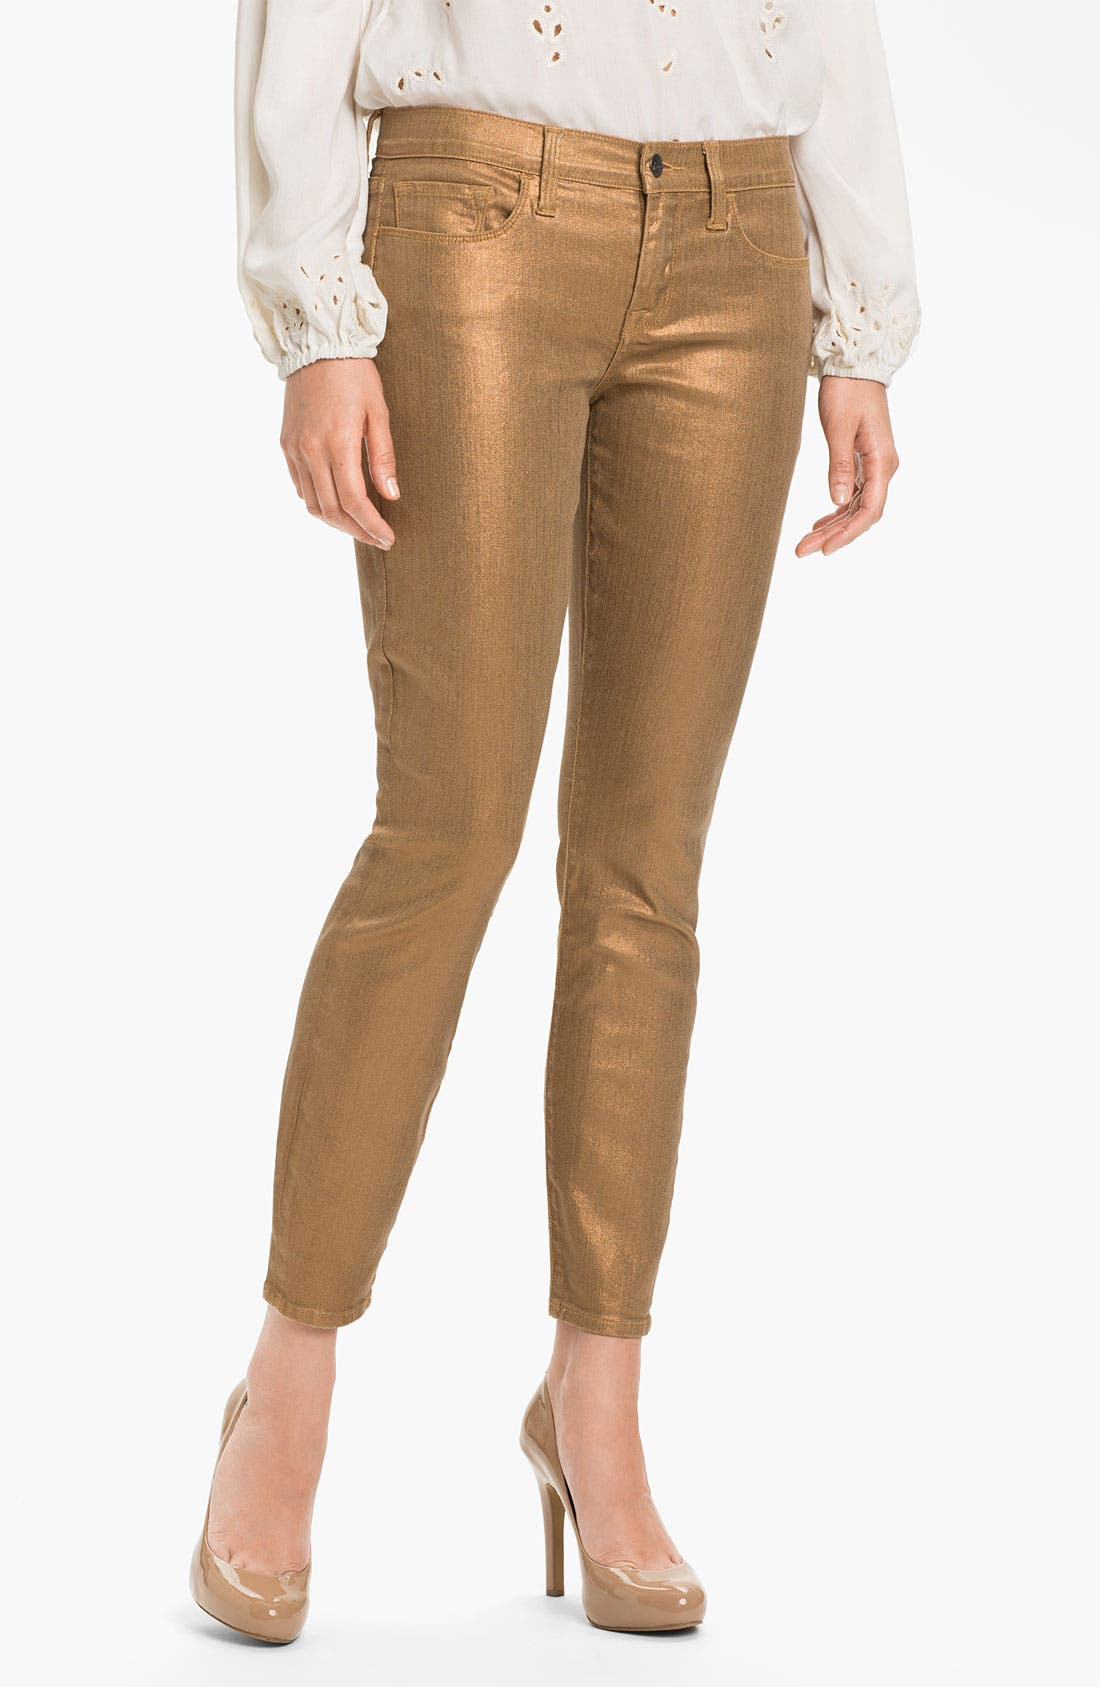 Main Image - Lucky Brand 'Sofia' Coated Sparkle Jeans (Online Exclusive)